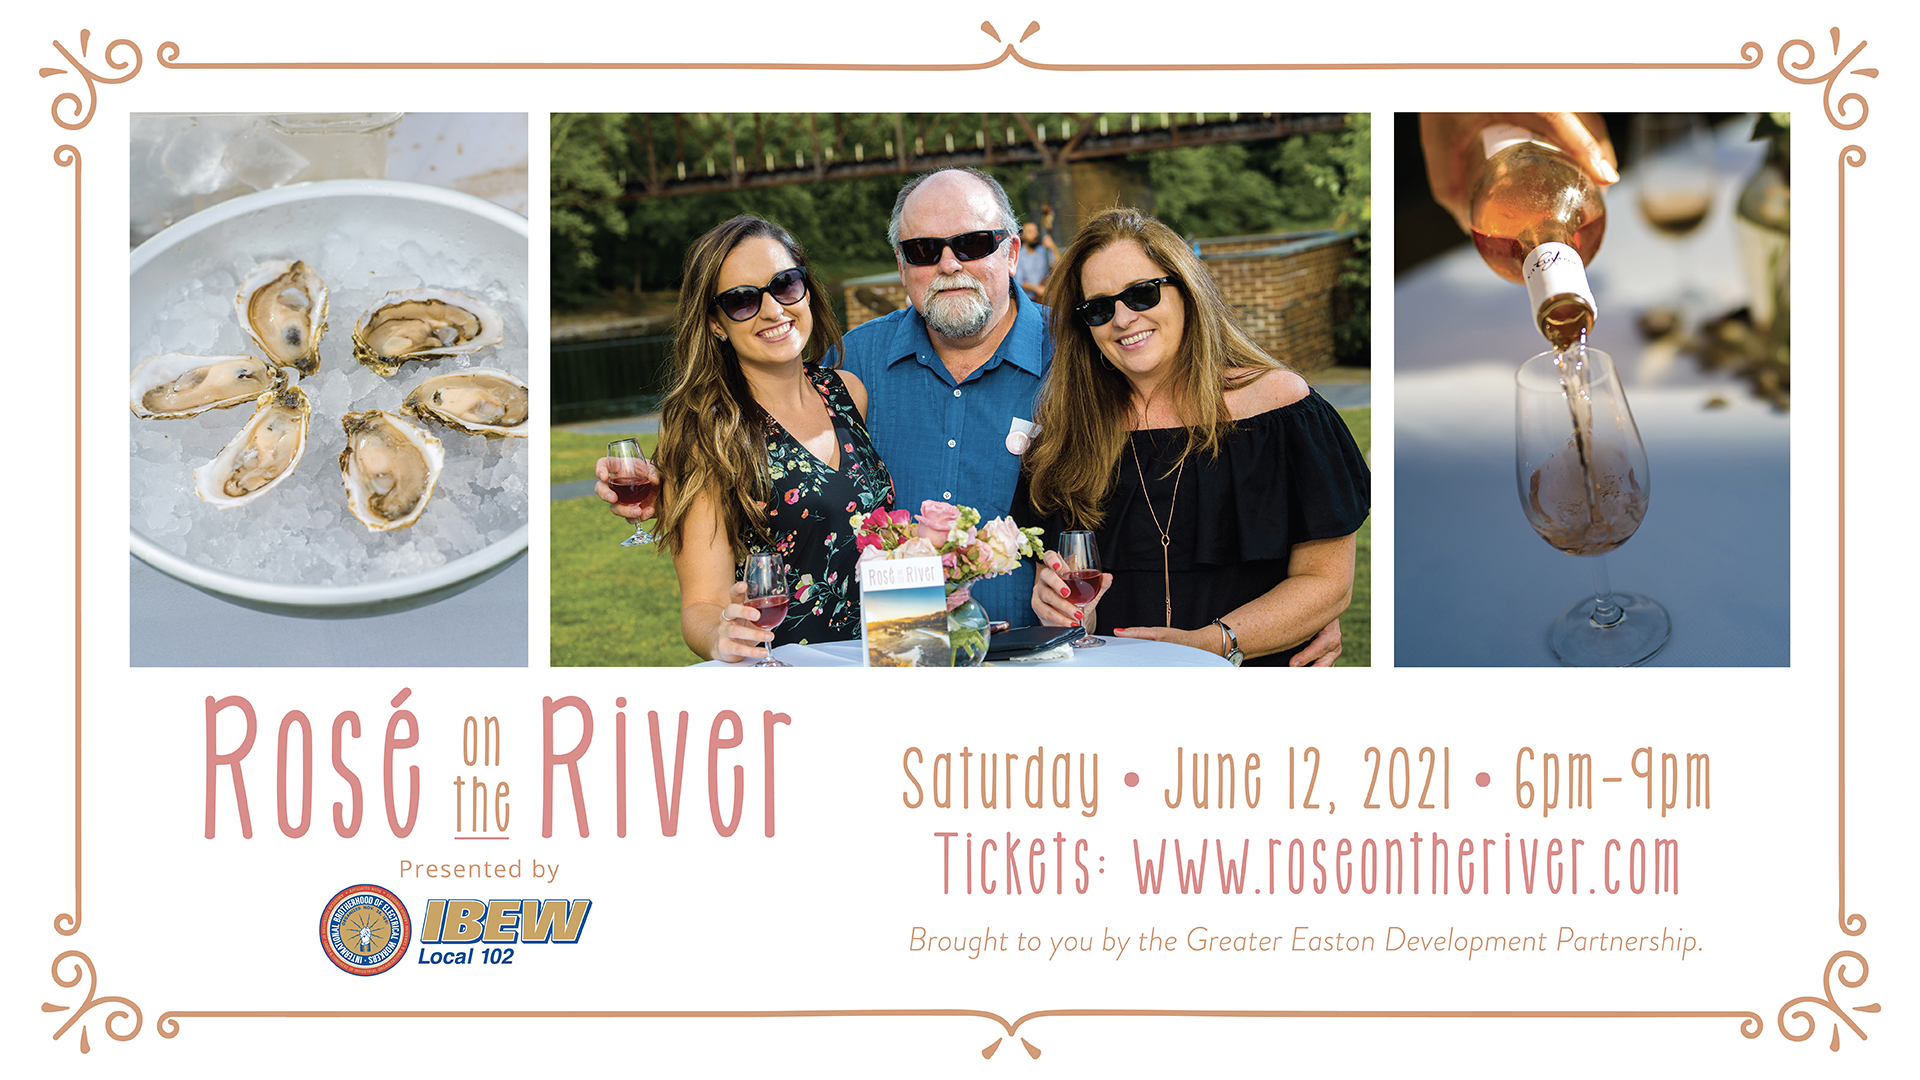 Rosé on the River Will Offer International Wines, Oysters & More